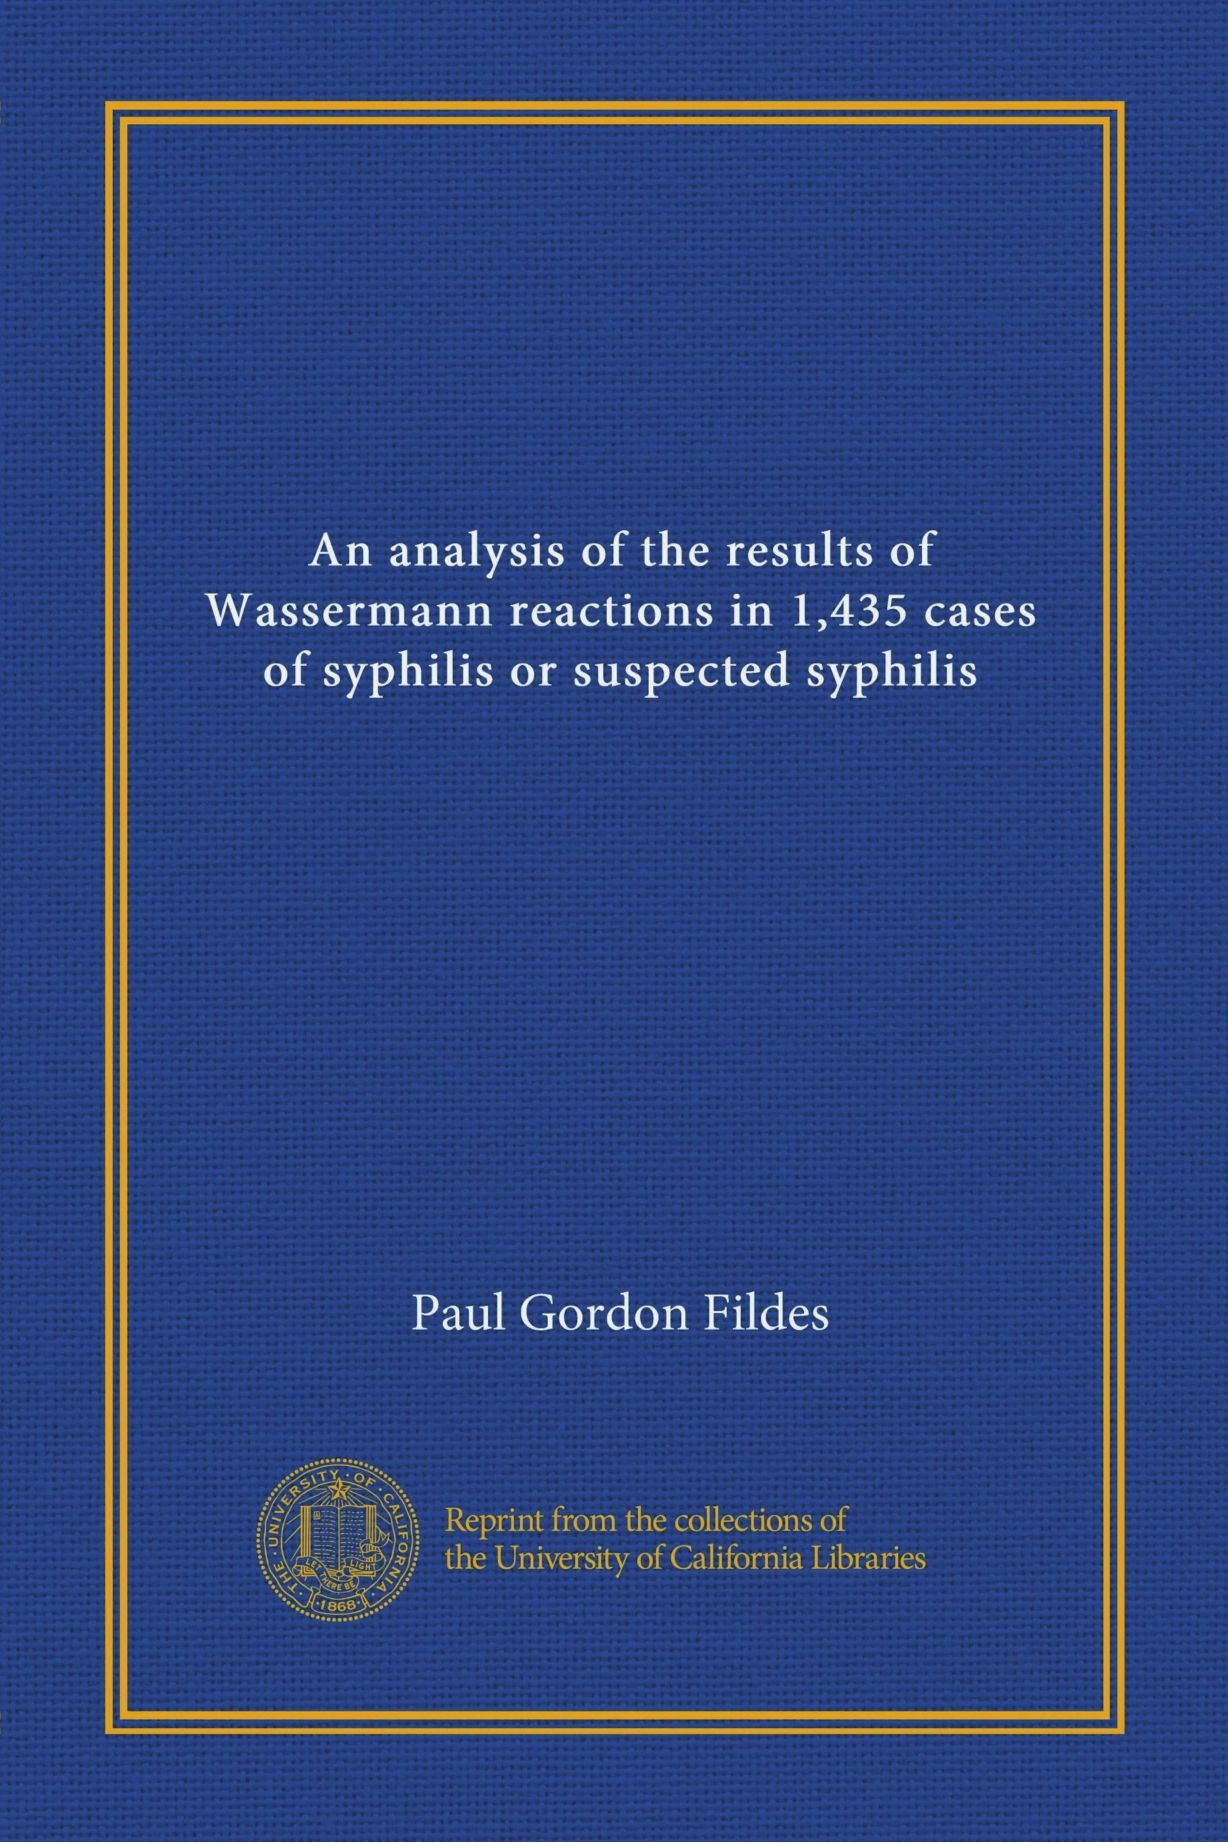 An analysis of the results of Wassermann reactions in 1,435 cases of syphilis or suspected syphilis pdf